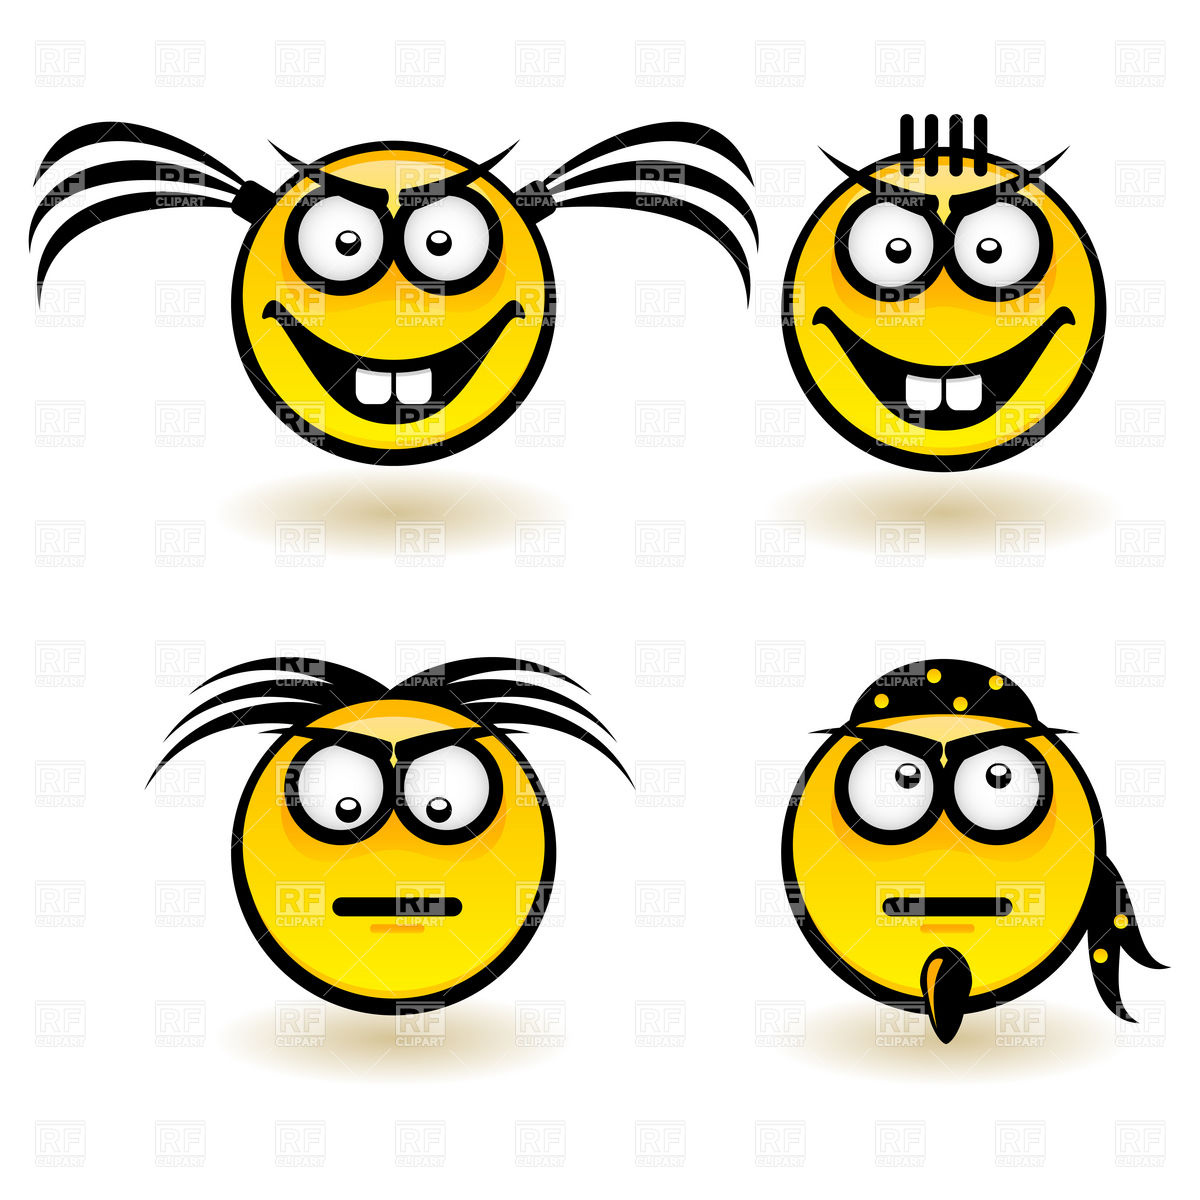 1200x1200 Cartoon Smiley Face Icons With Emotions (Serious And Cheerful